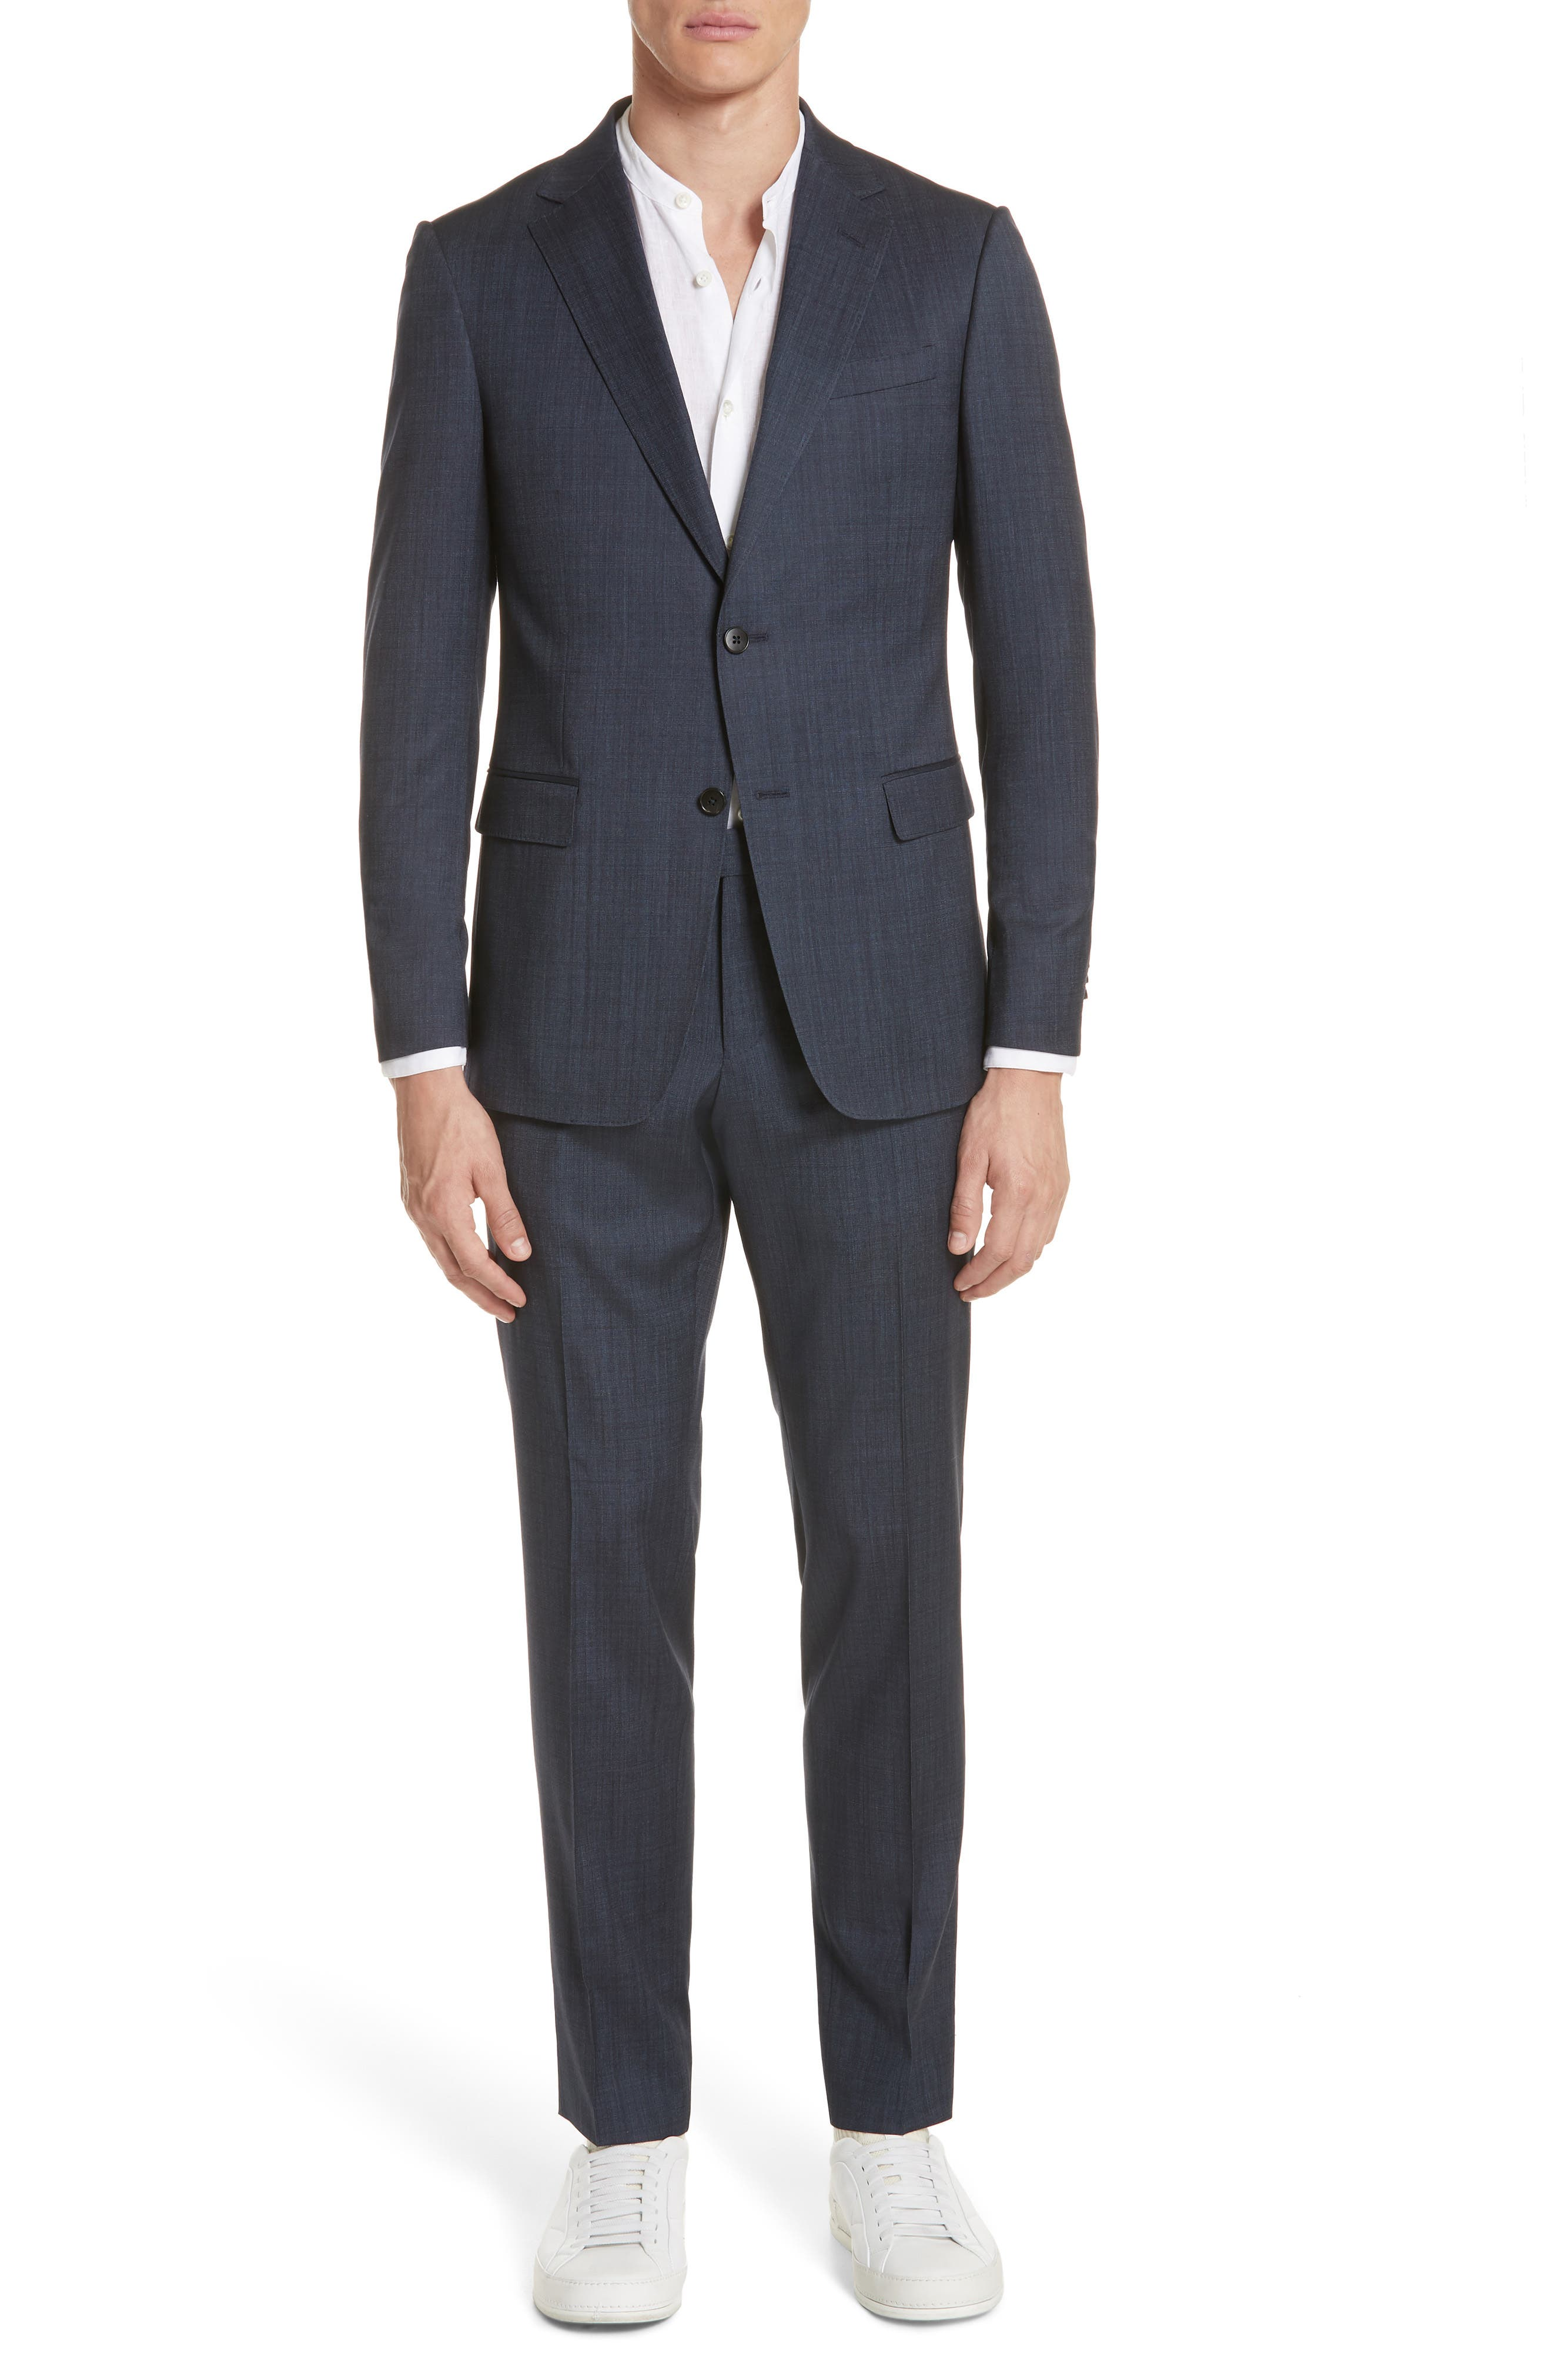 Z Zegna Trim Fit Solid Wool & Silk Suit